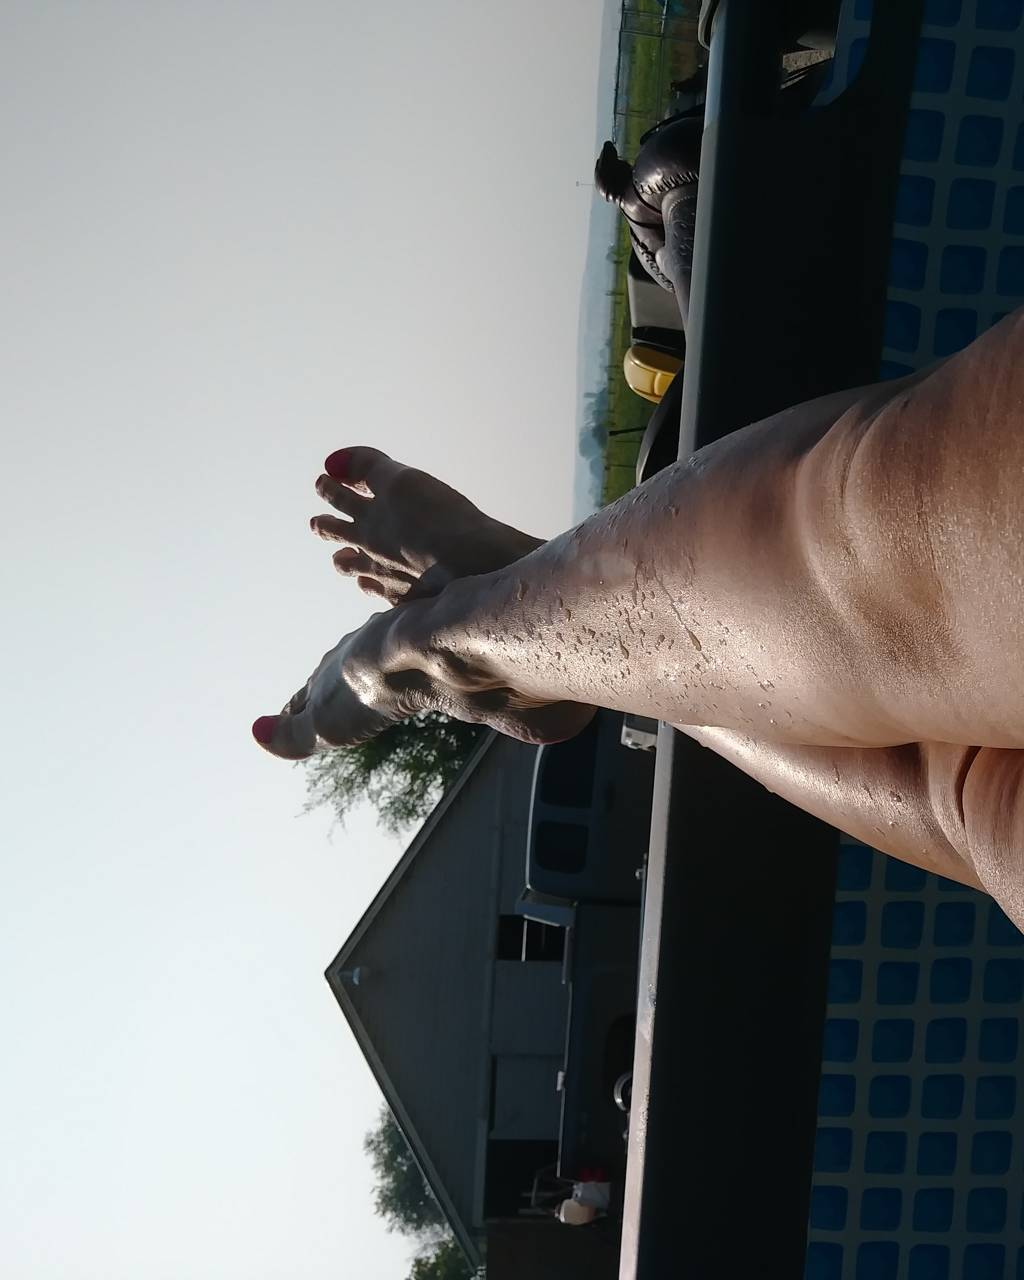 Swimming pool legs